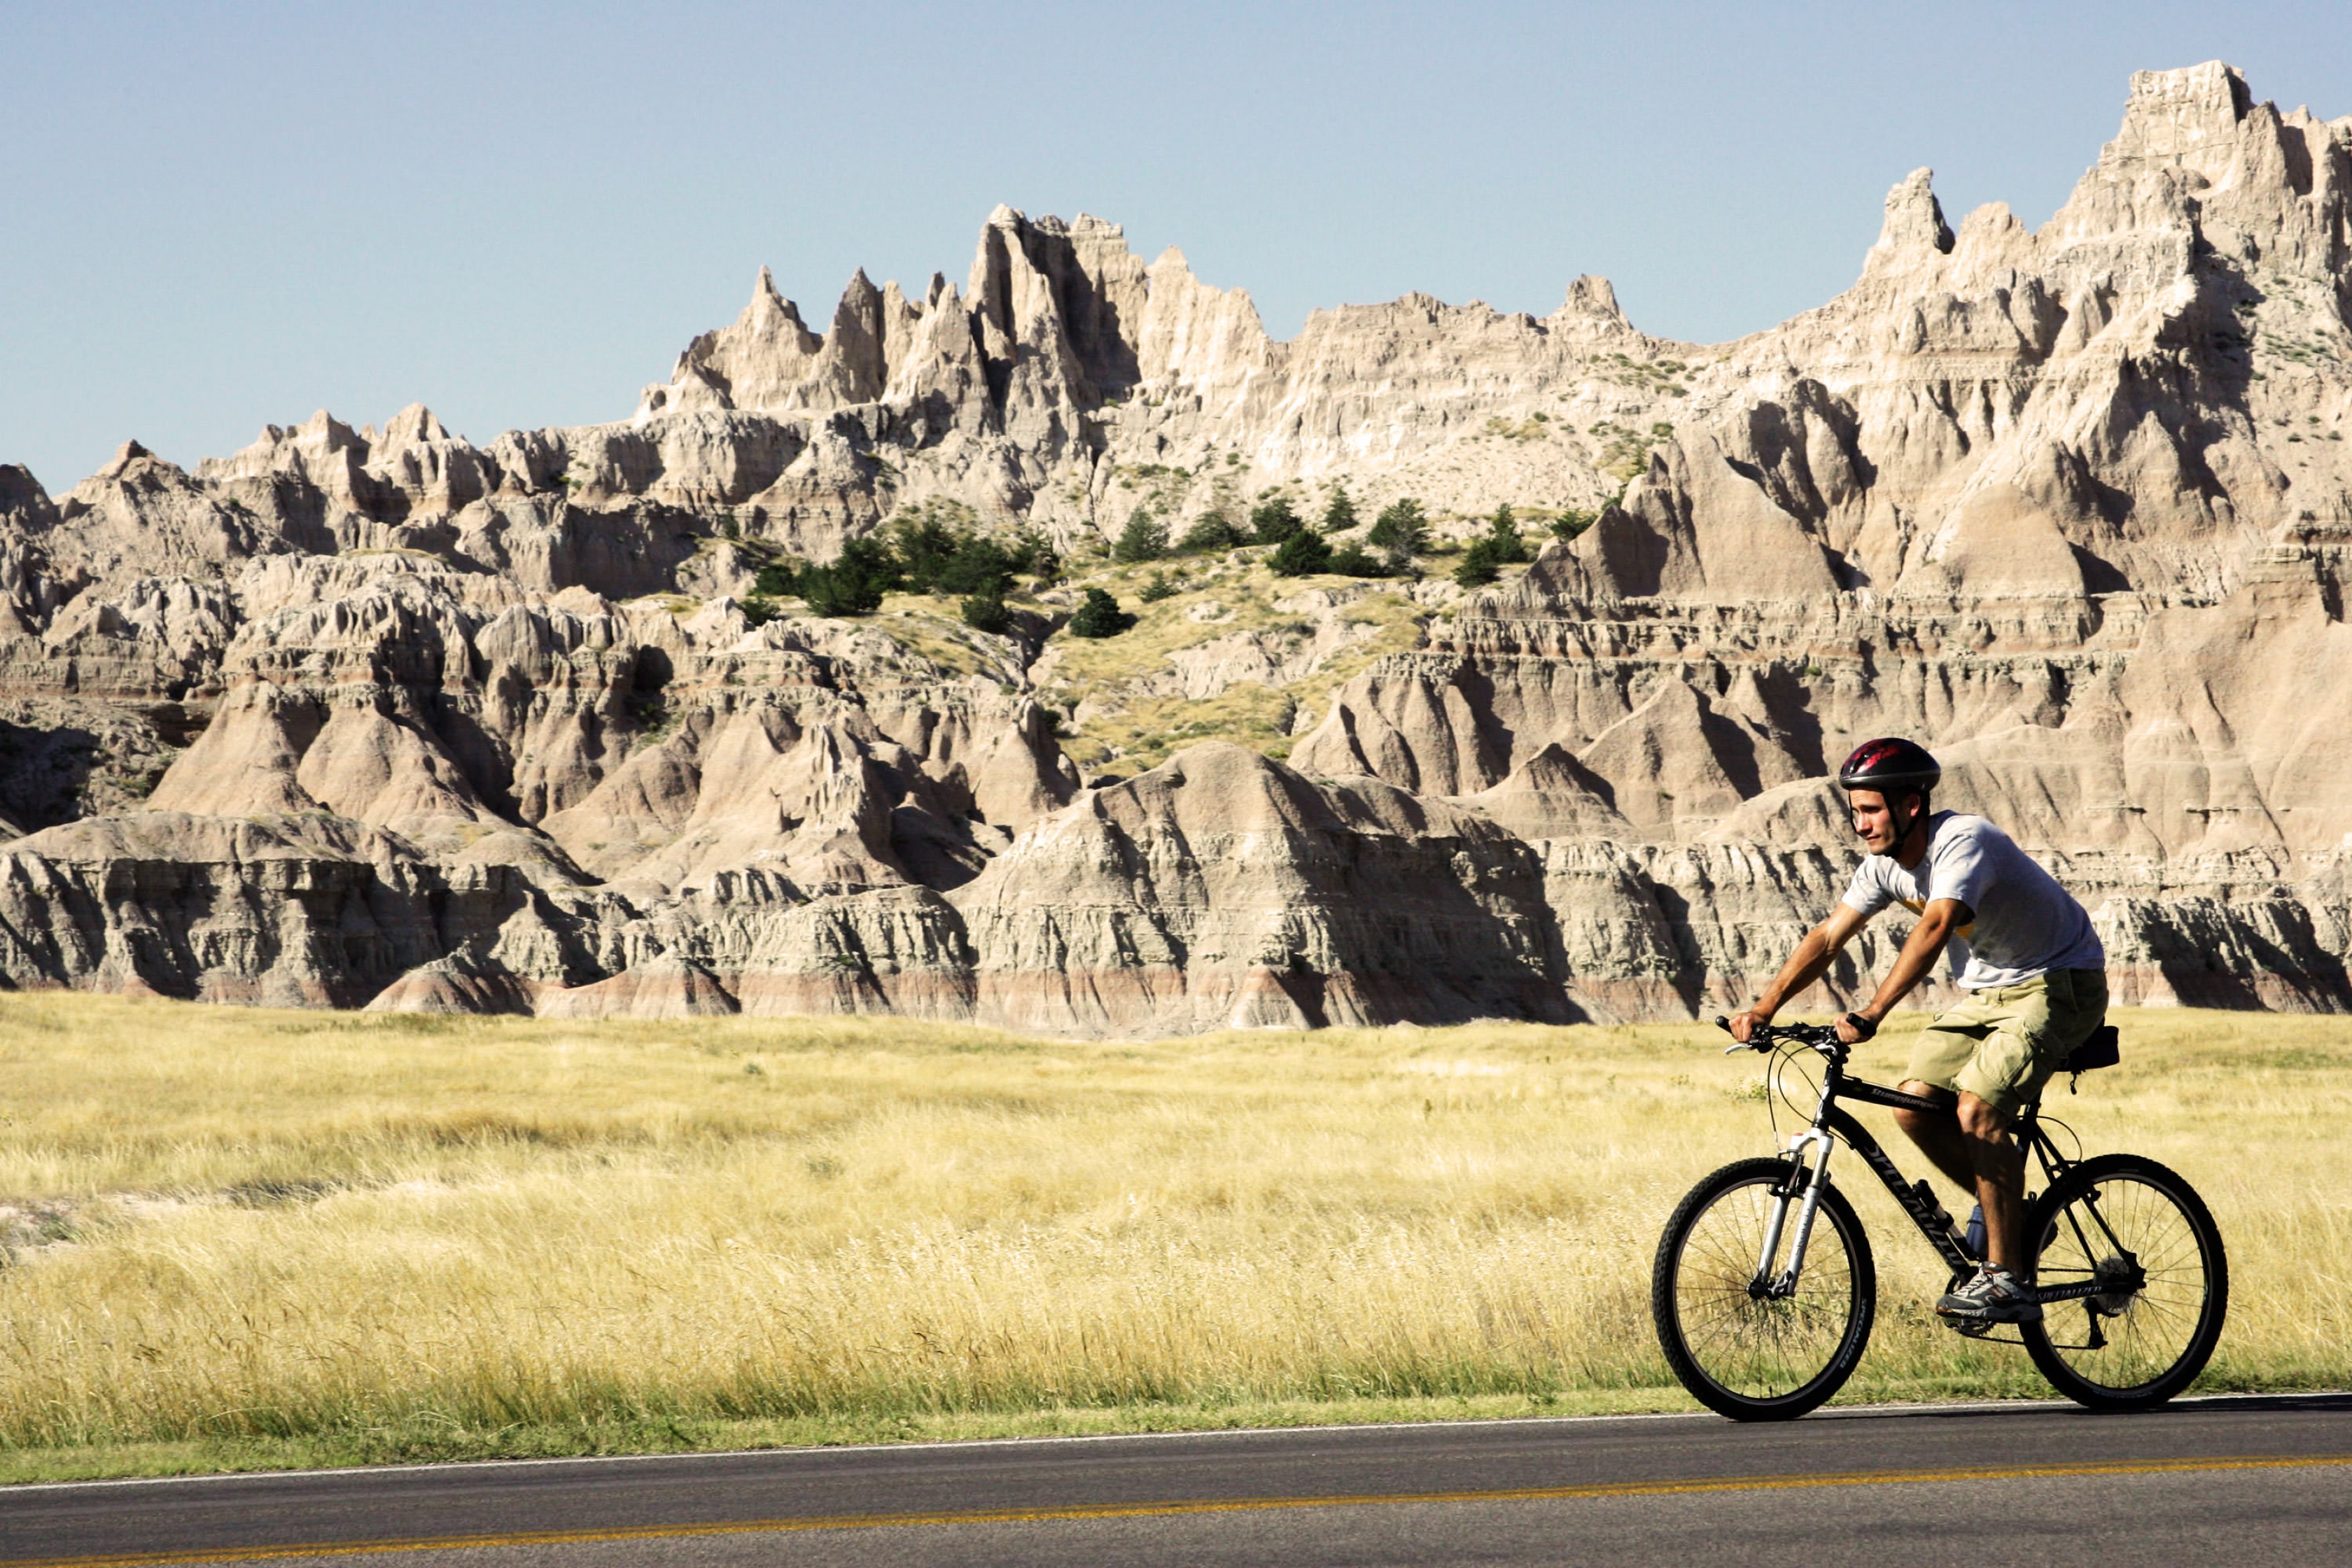 A man bikes through Badlands National Park.